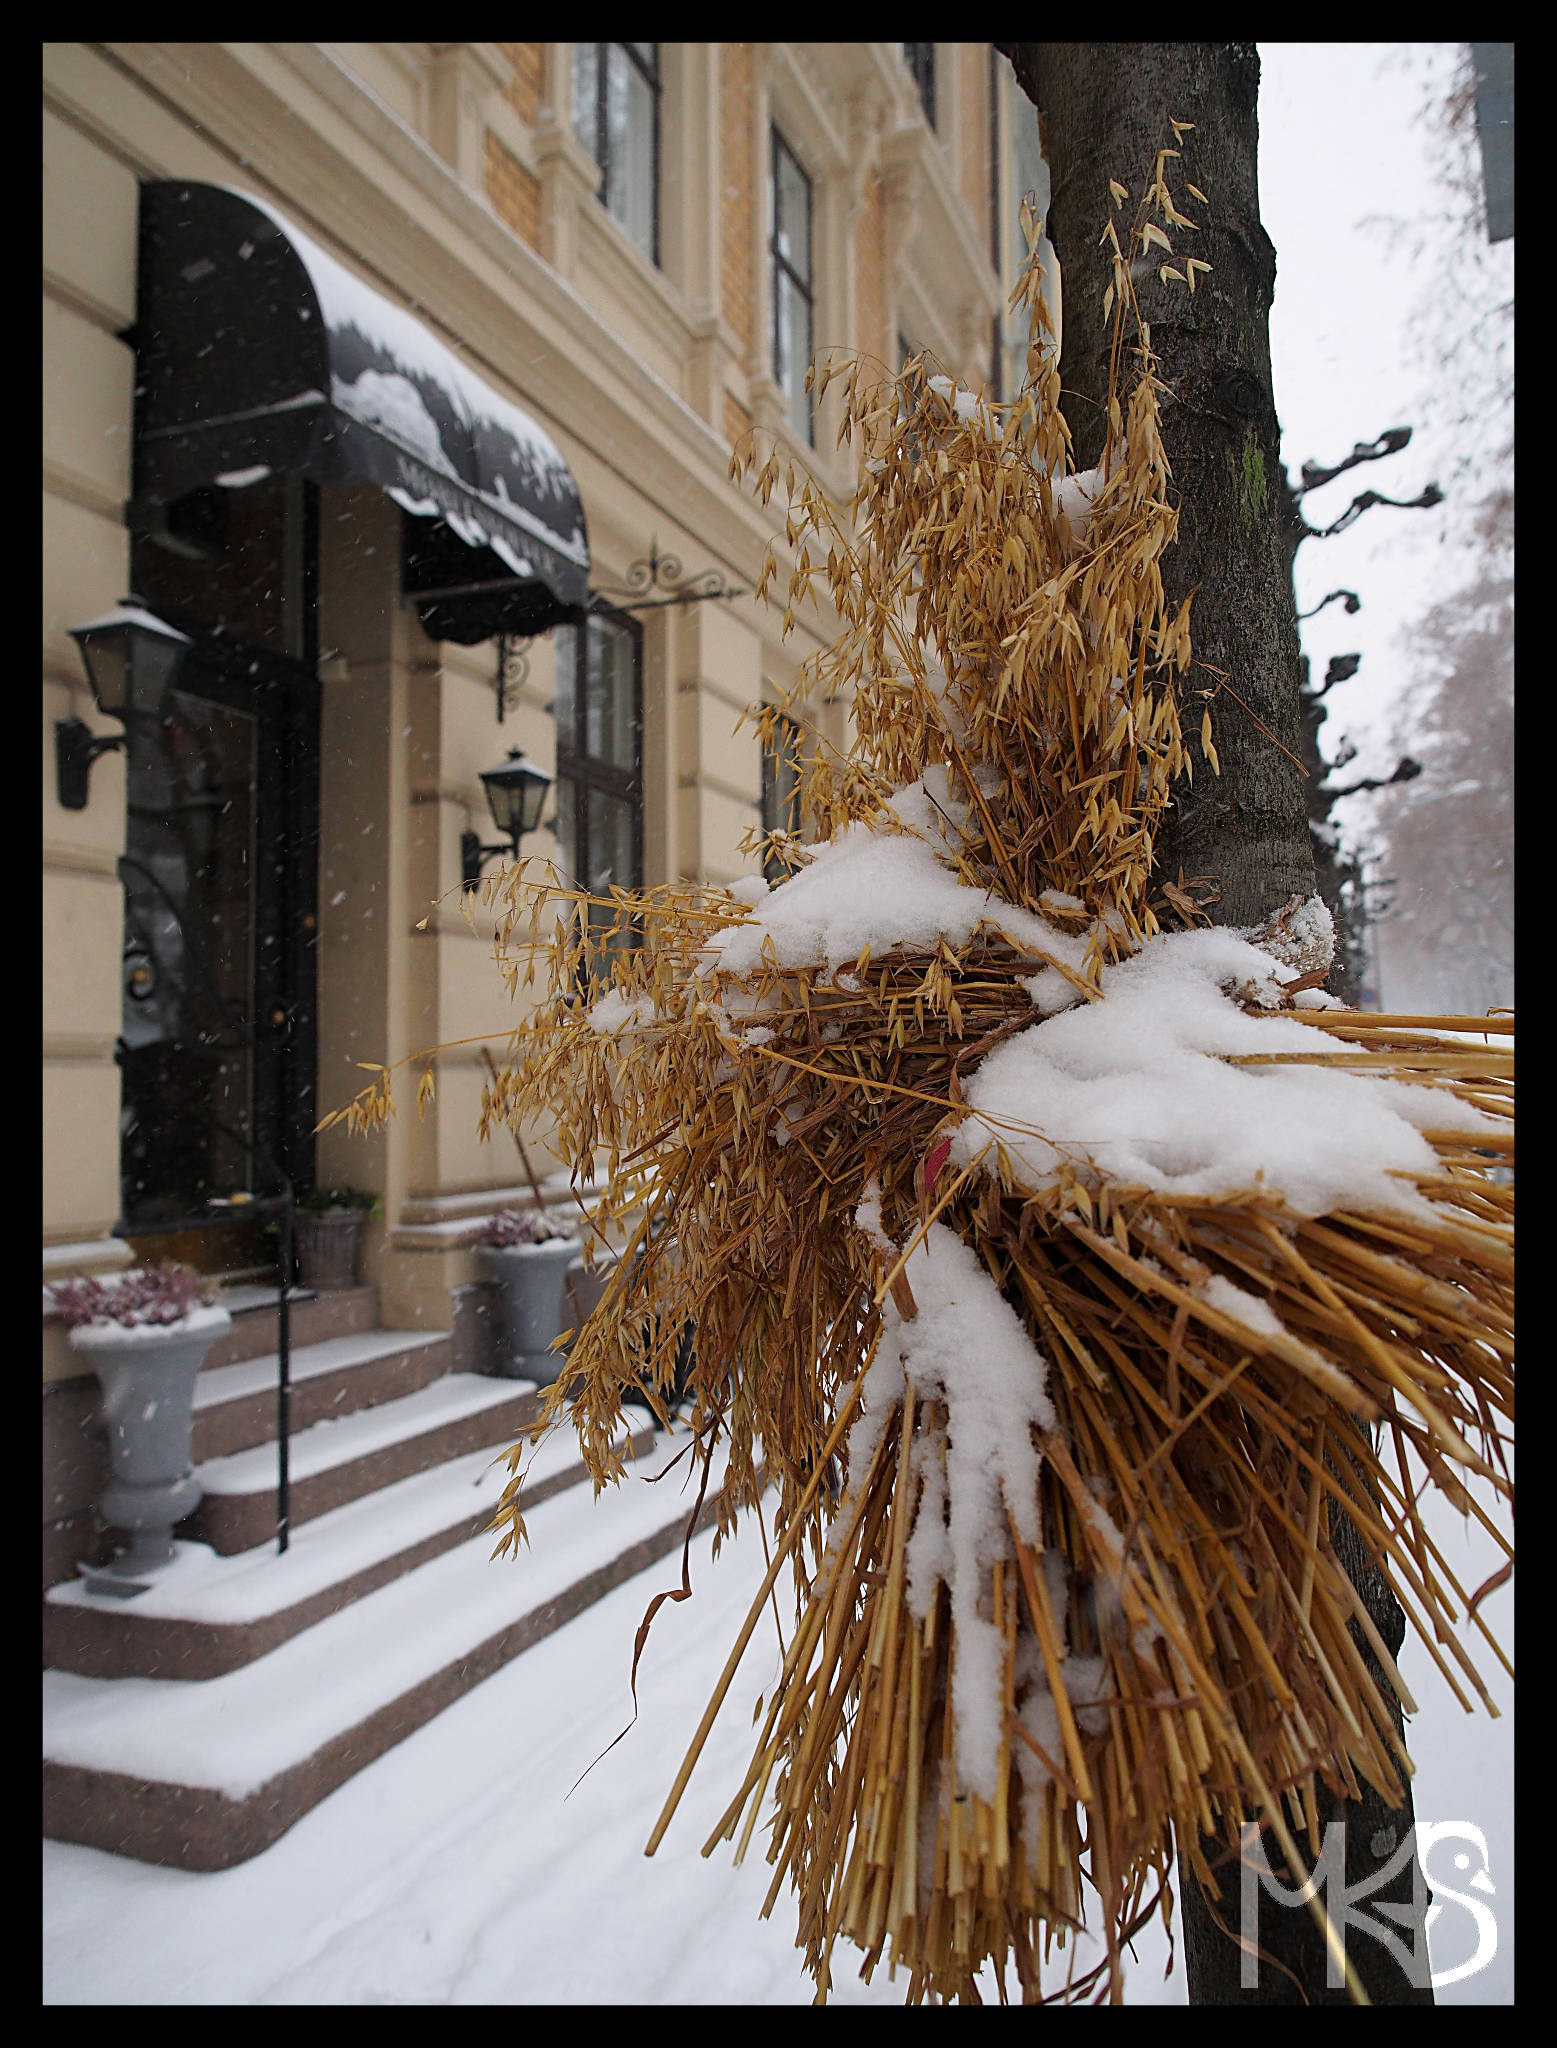 Bundles of grain for birds, Oslo